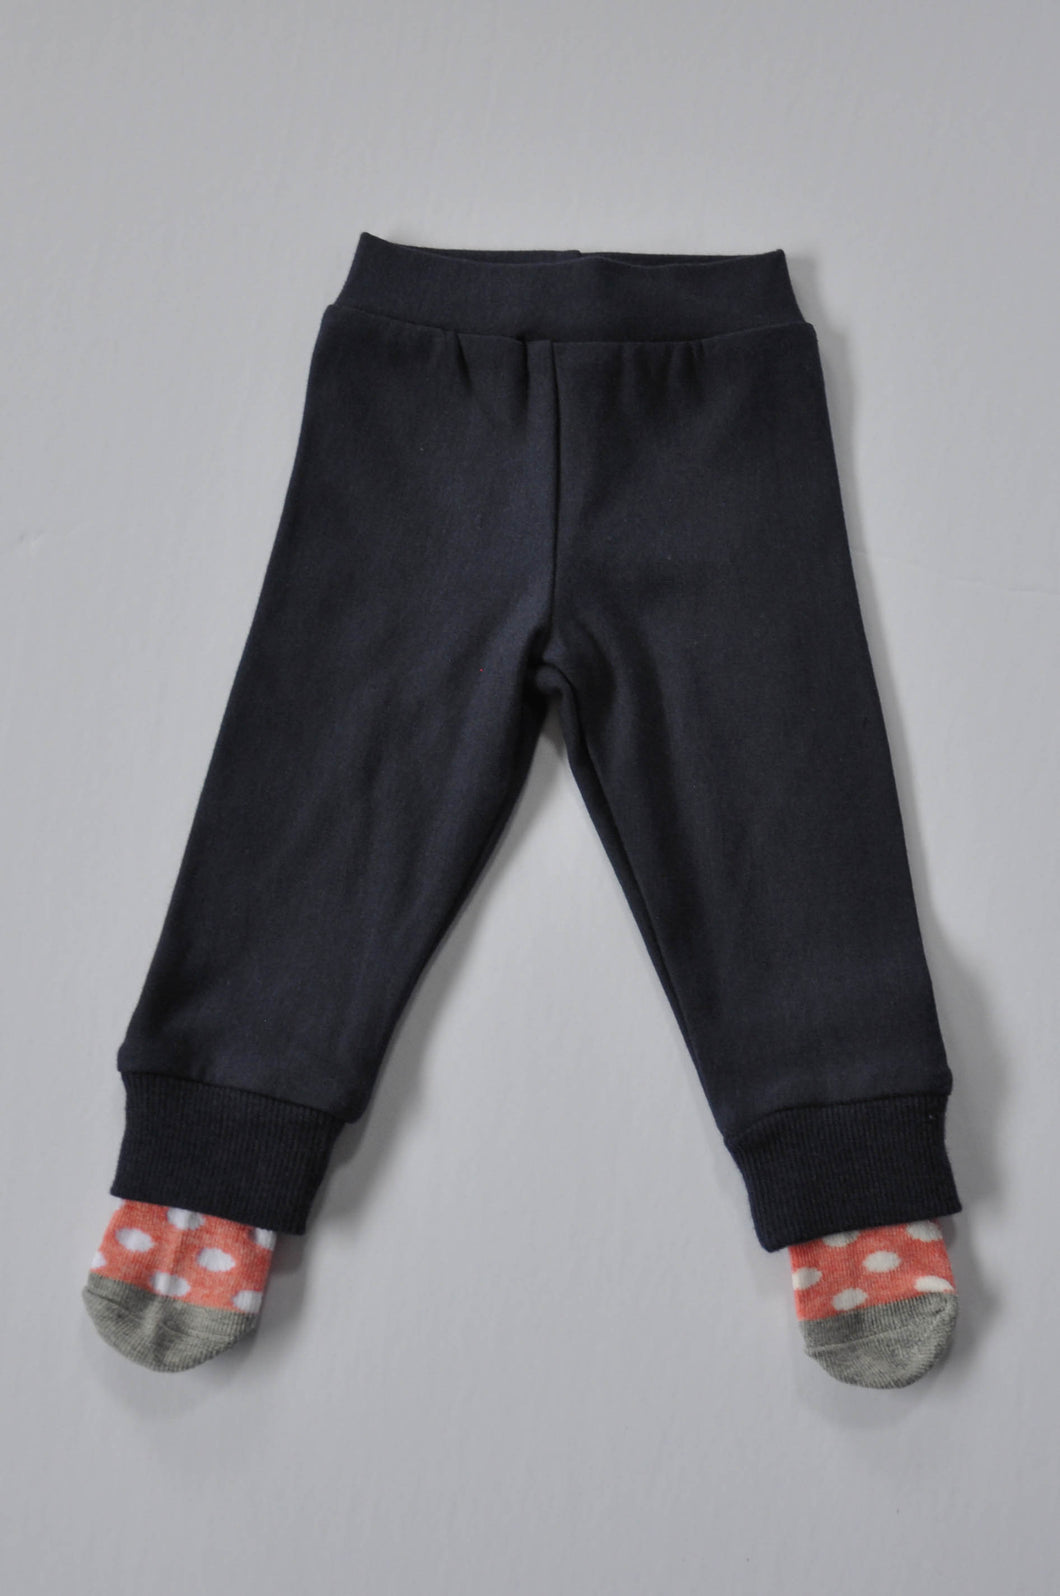 Classic Navy Leggings with Red Polka Dot Socks